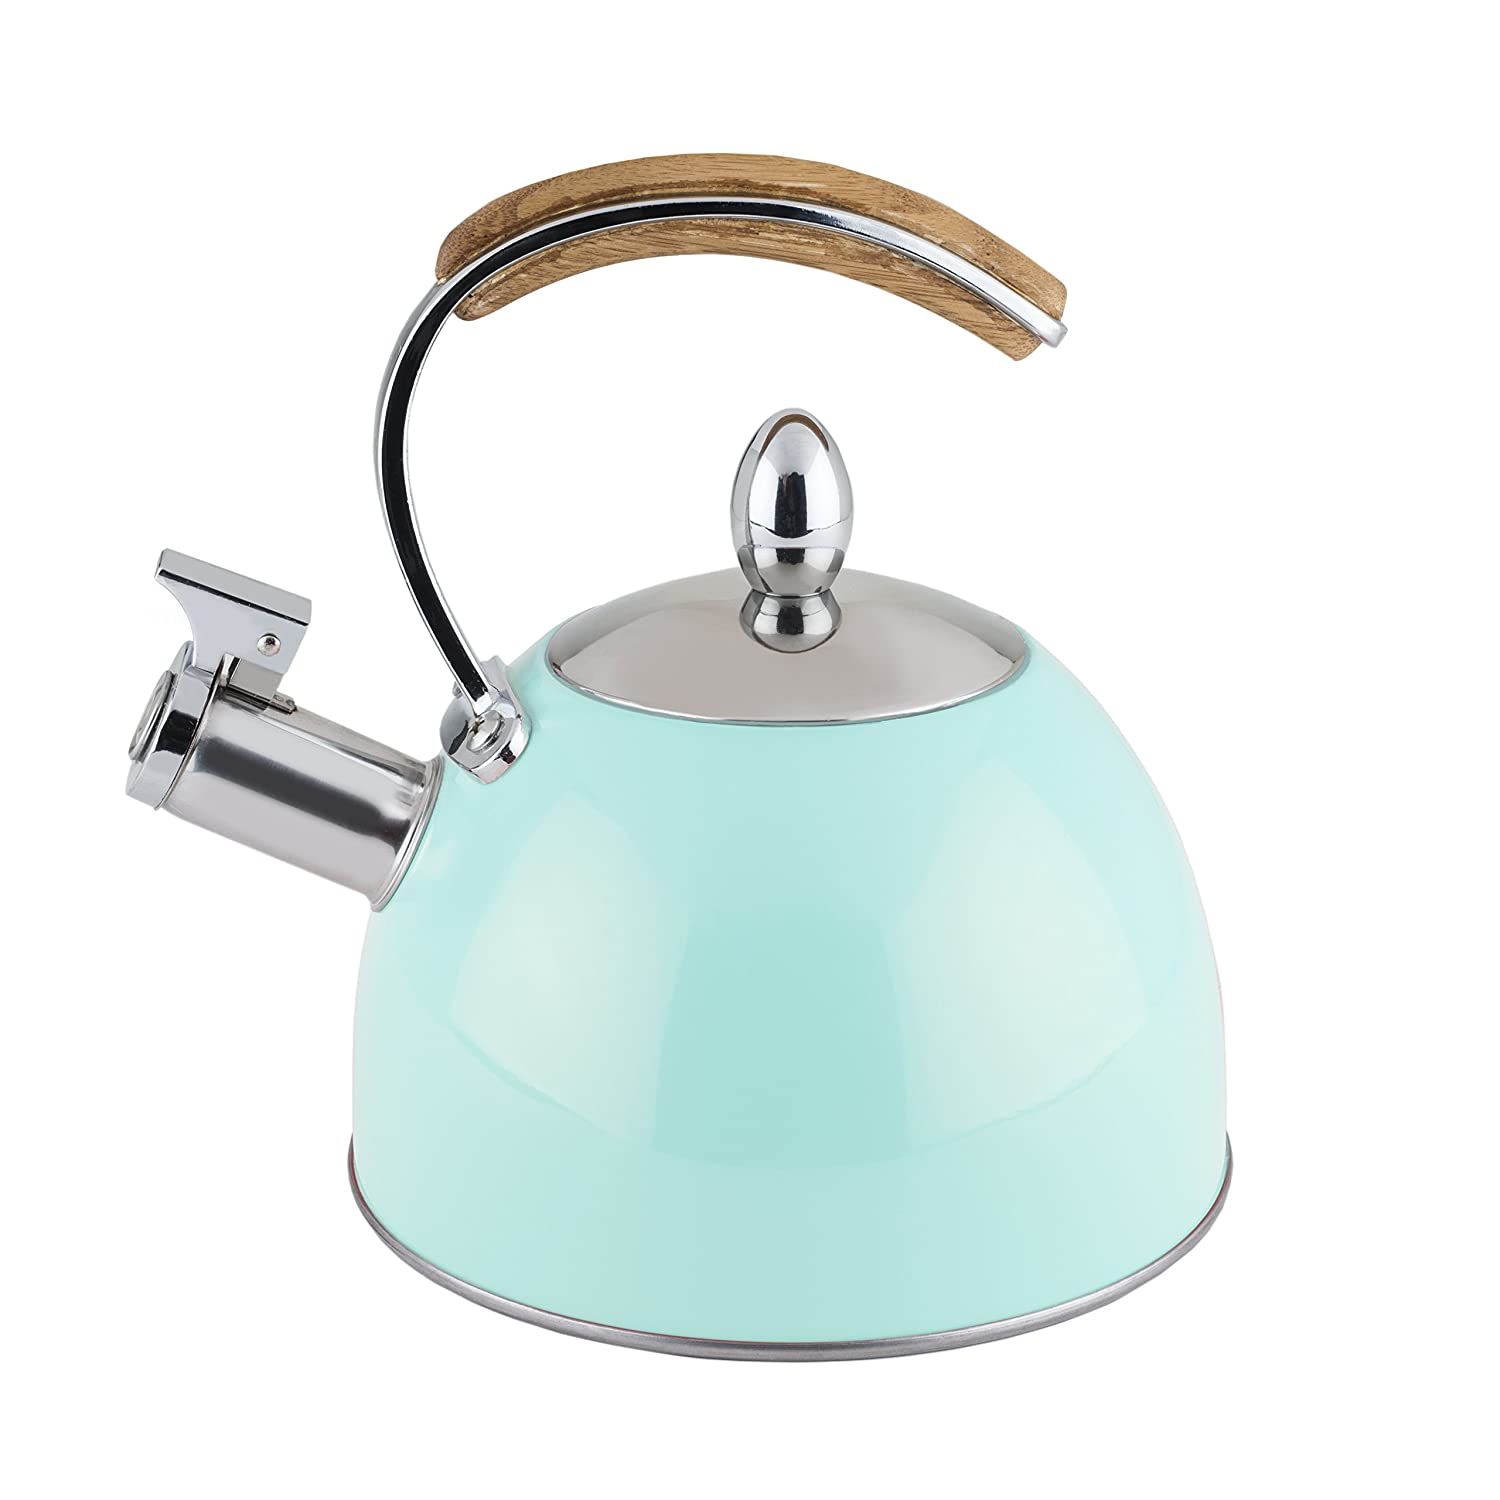 amazoncom presley tea kettle by pinky up (blue) whistling stove  - amazoncom presley tea kettle by pinky up (blue) whistling stove top teakettle  kitchen  dining